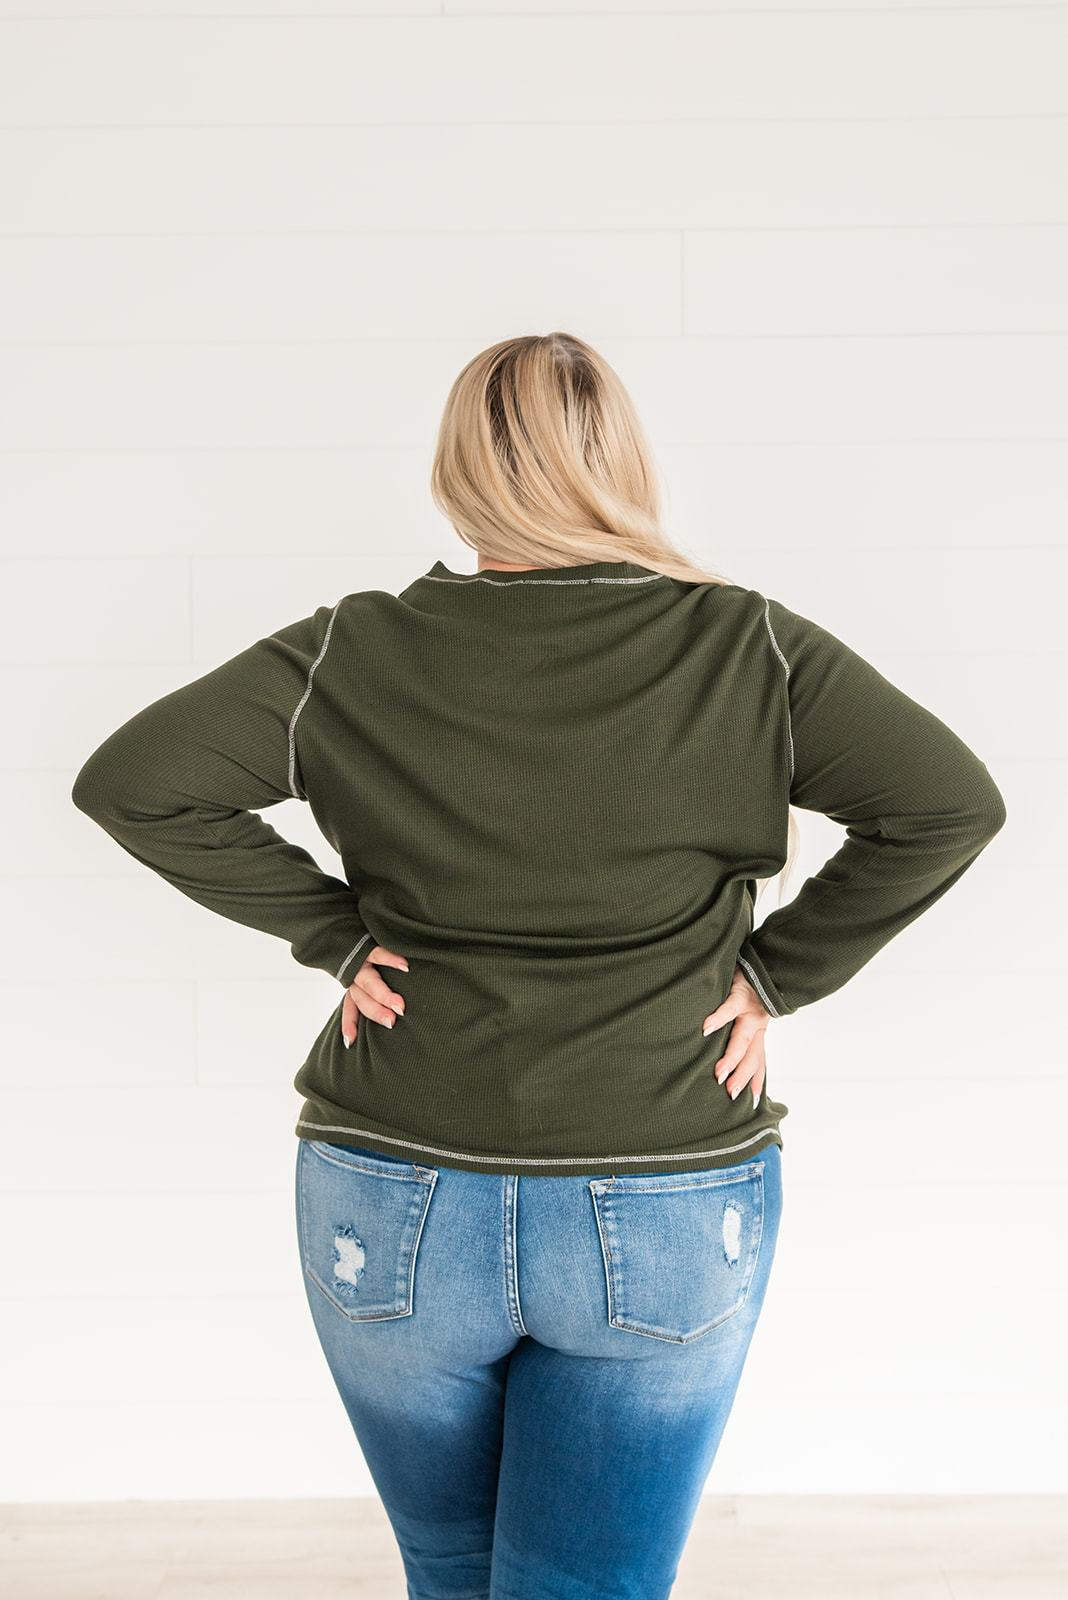 Basic Needs Thermal Henley Top- Olive, Clothing - Lola Cerina Boutique